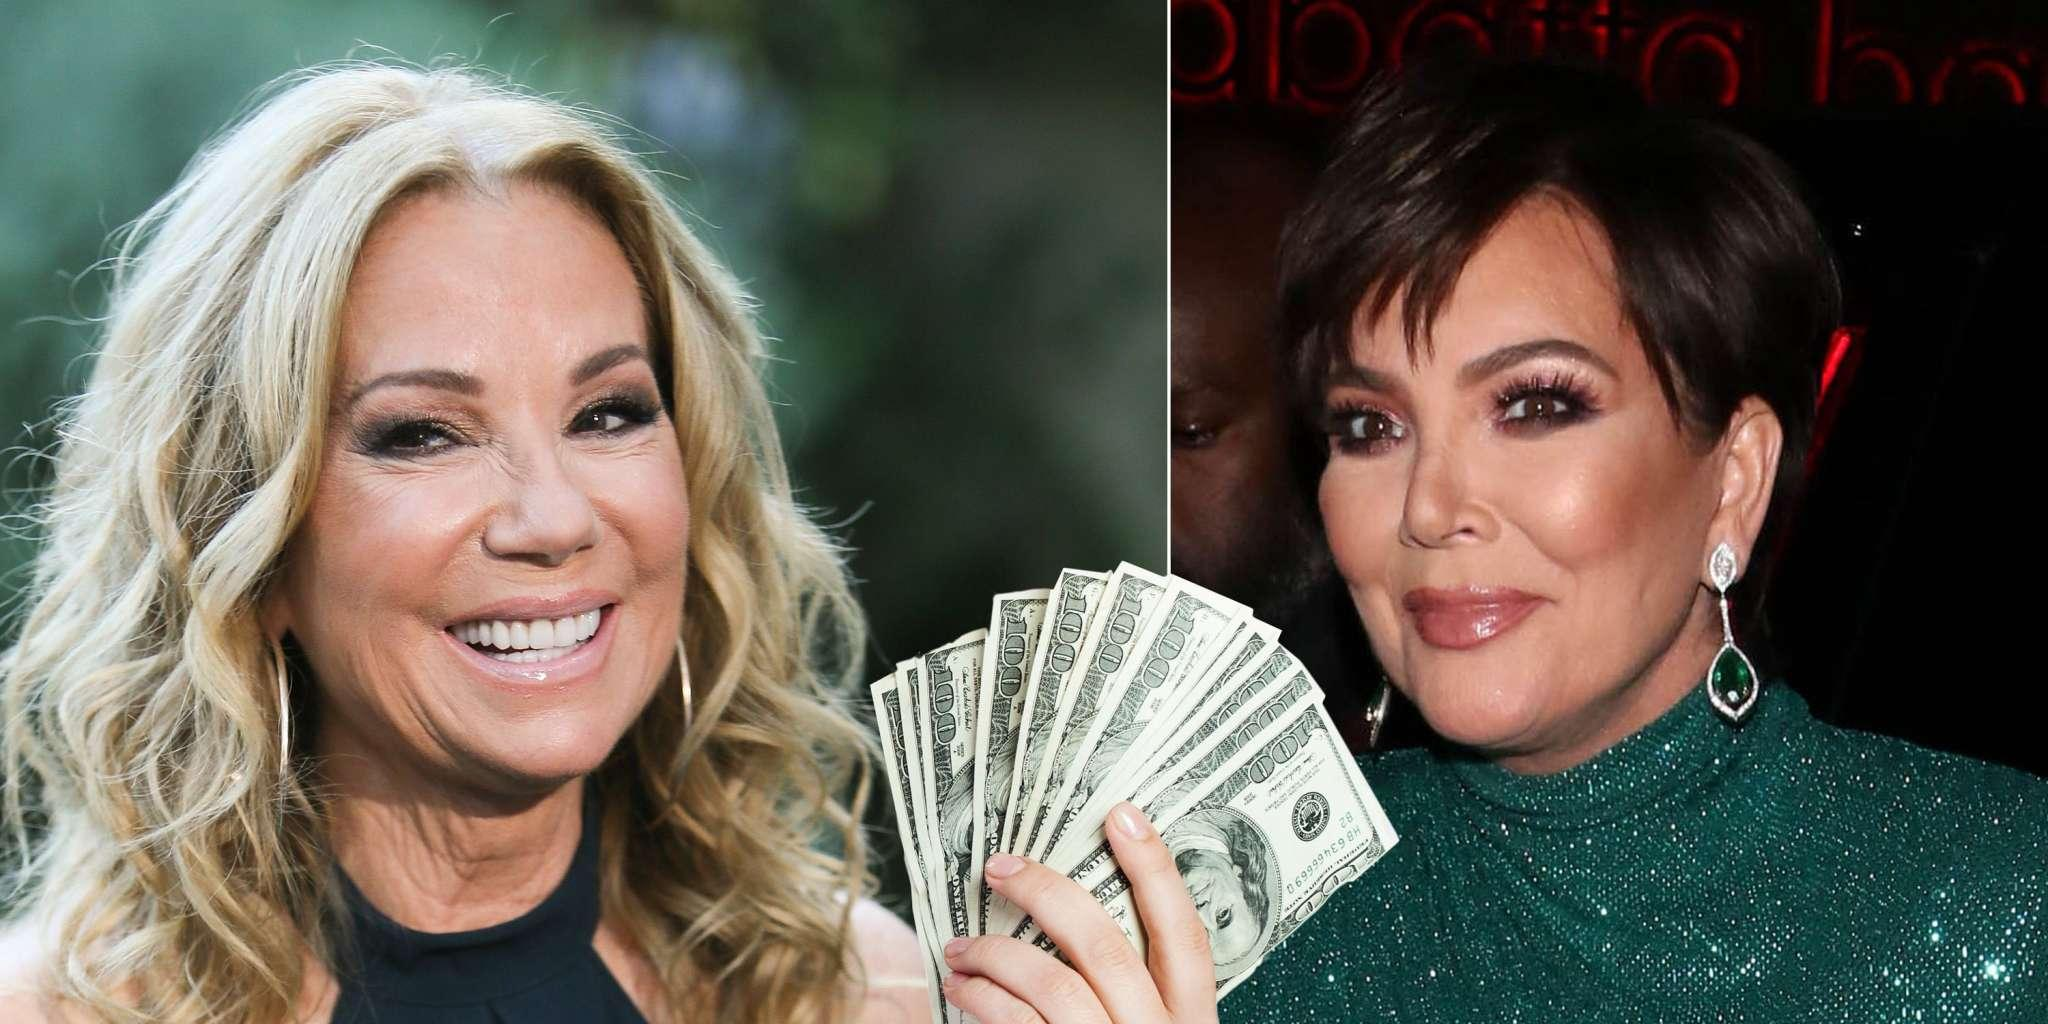 KUWK: Kris Jenner 'Upset' After Kathie Lee Gifford Reveals She Borrowed Her Money She Never Got Back - Thinks It Was 'Tacky'